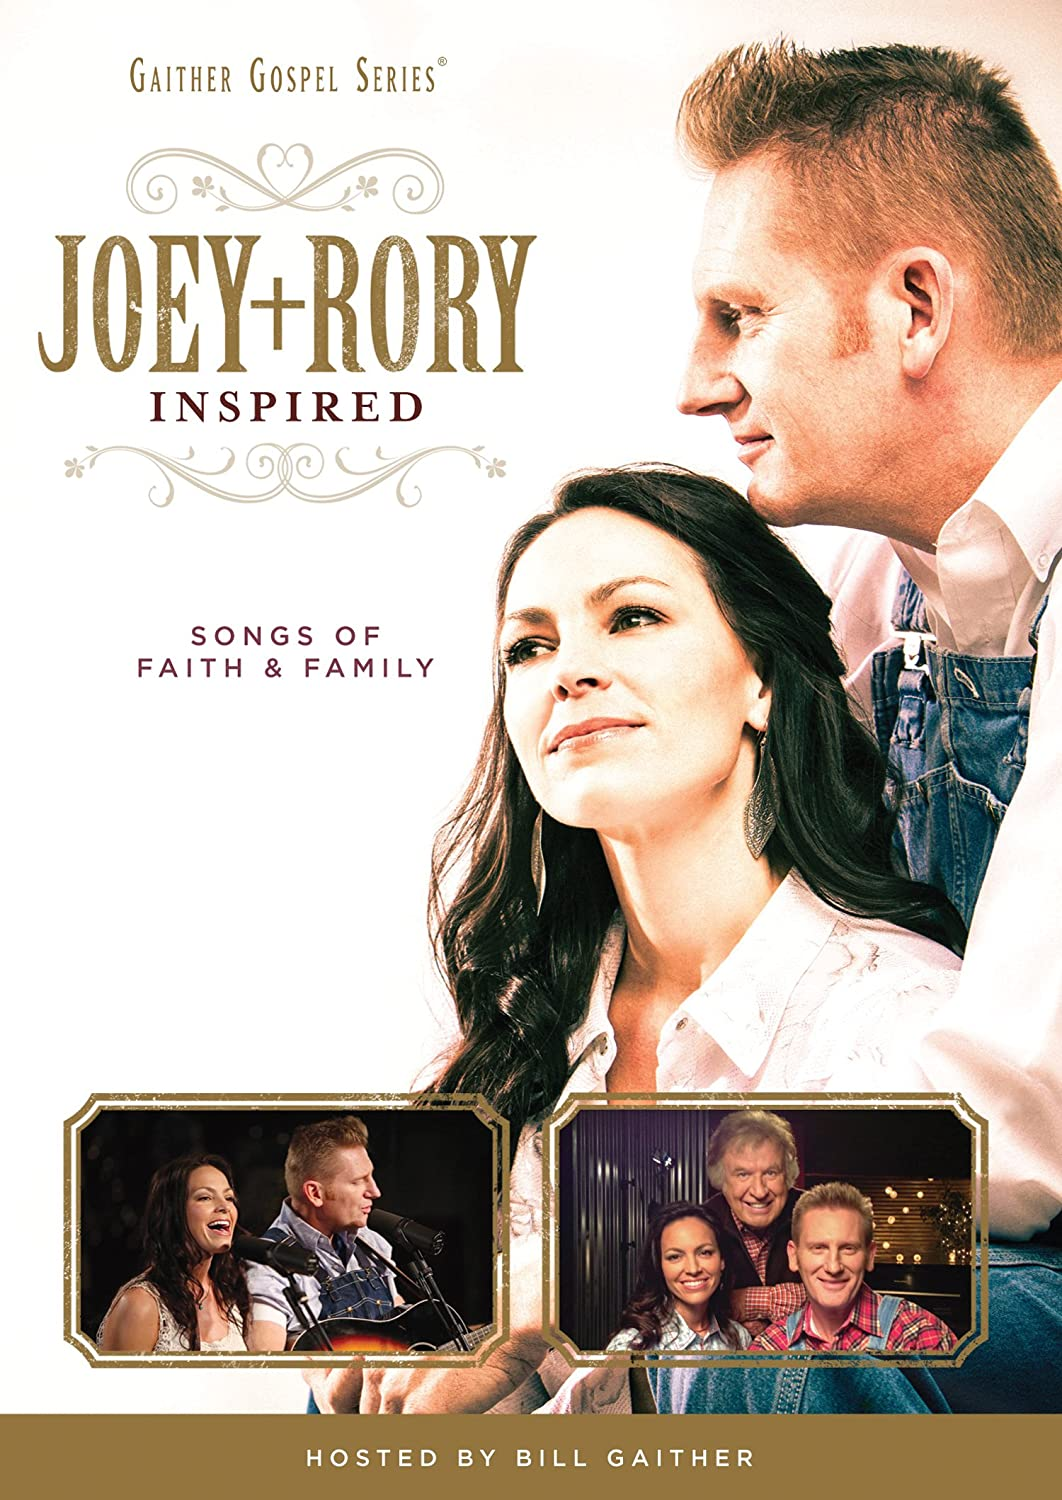 Amazon.com: Joey+Rory Inspired: Joey + Rory, Bill Gaither: Movies & TV